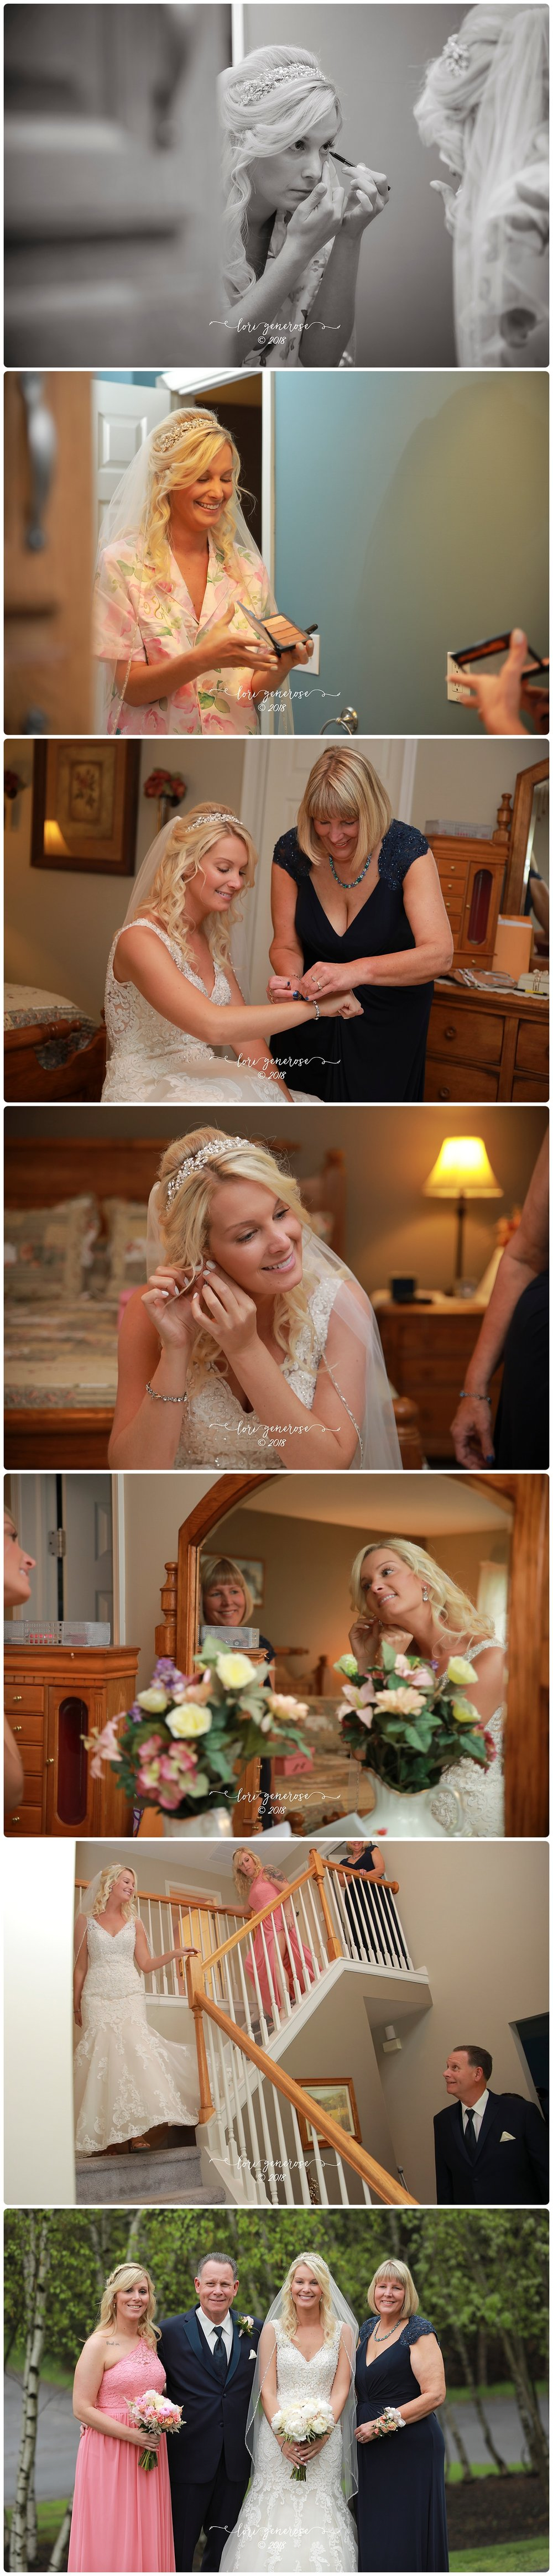 lgphotographylorigeneroseweddingbridegettingready.jpg